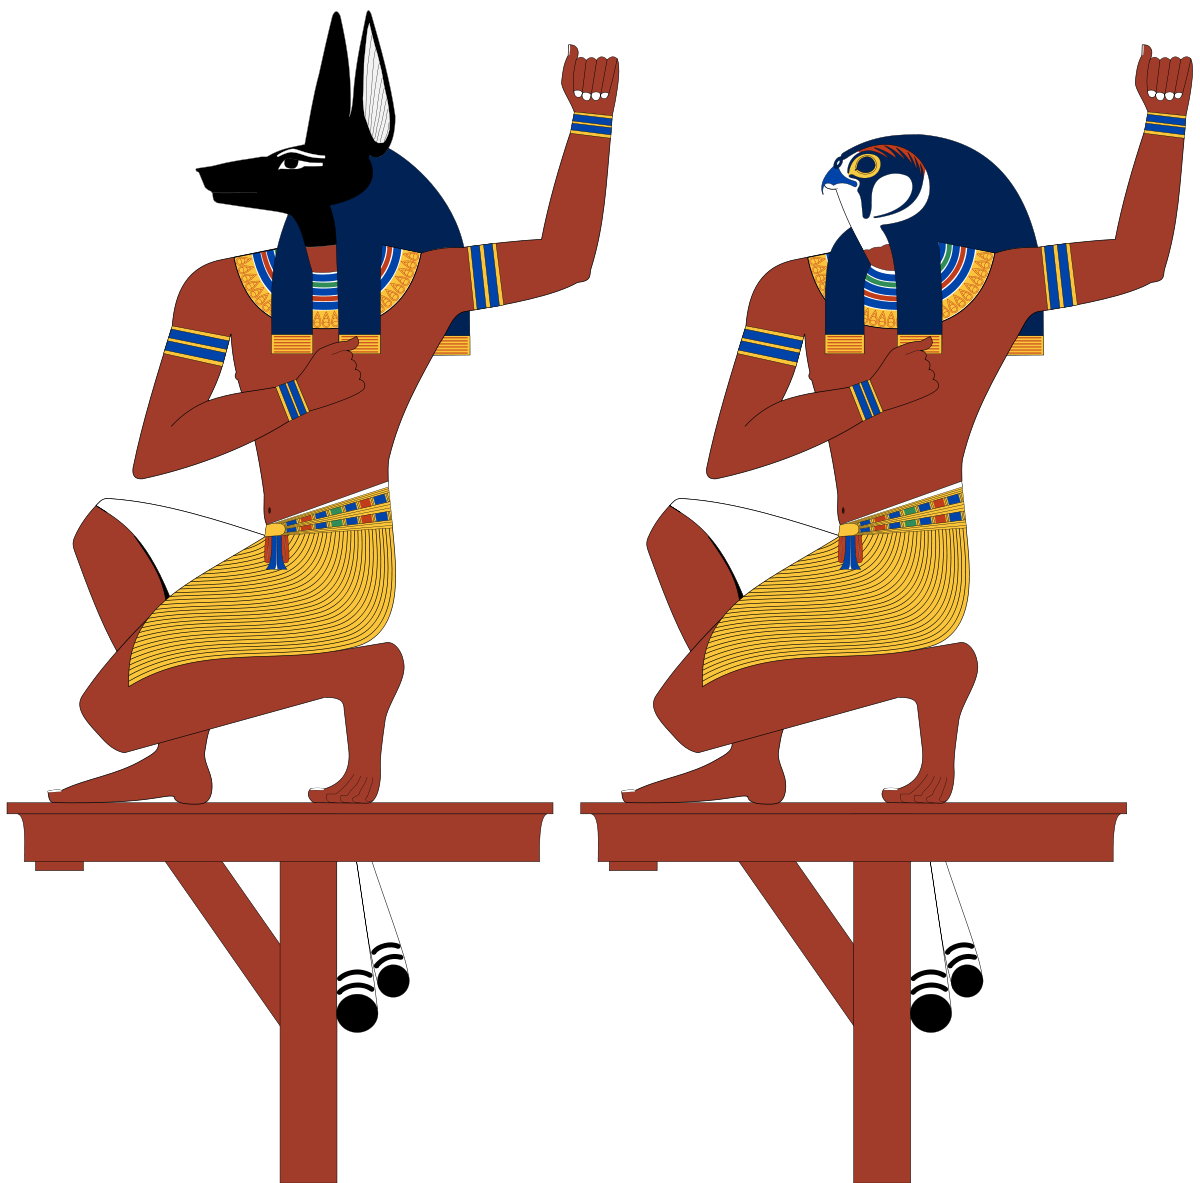 Souls of pe and. Egypt clipart egyptian anubis